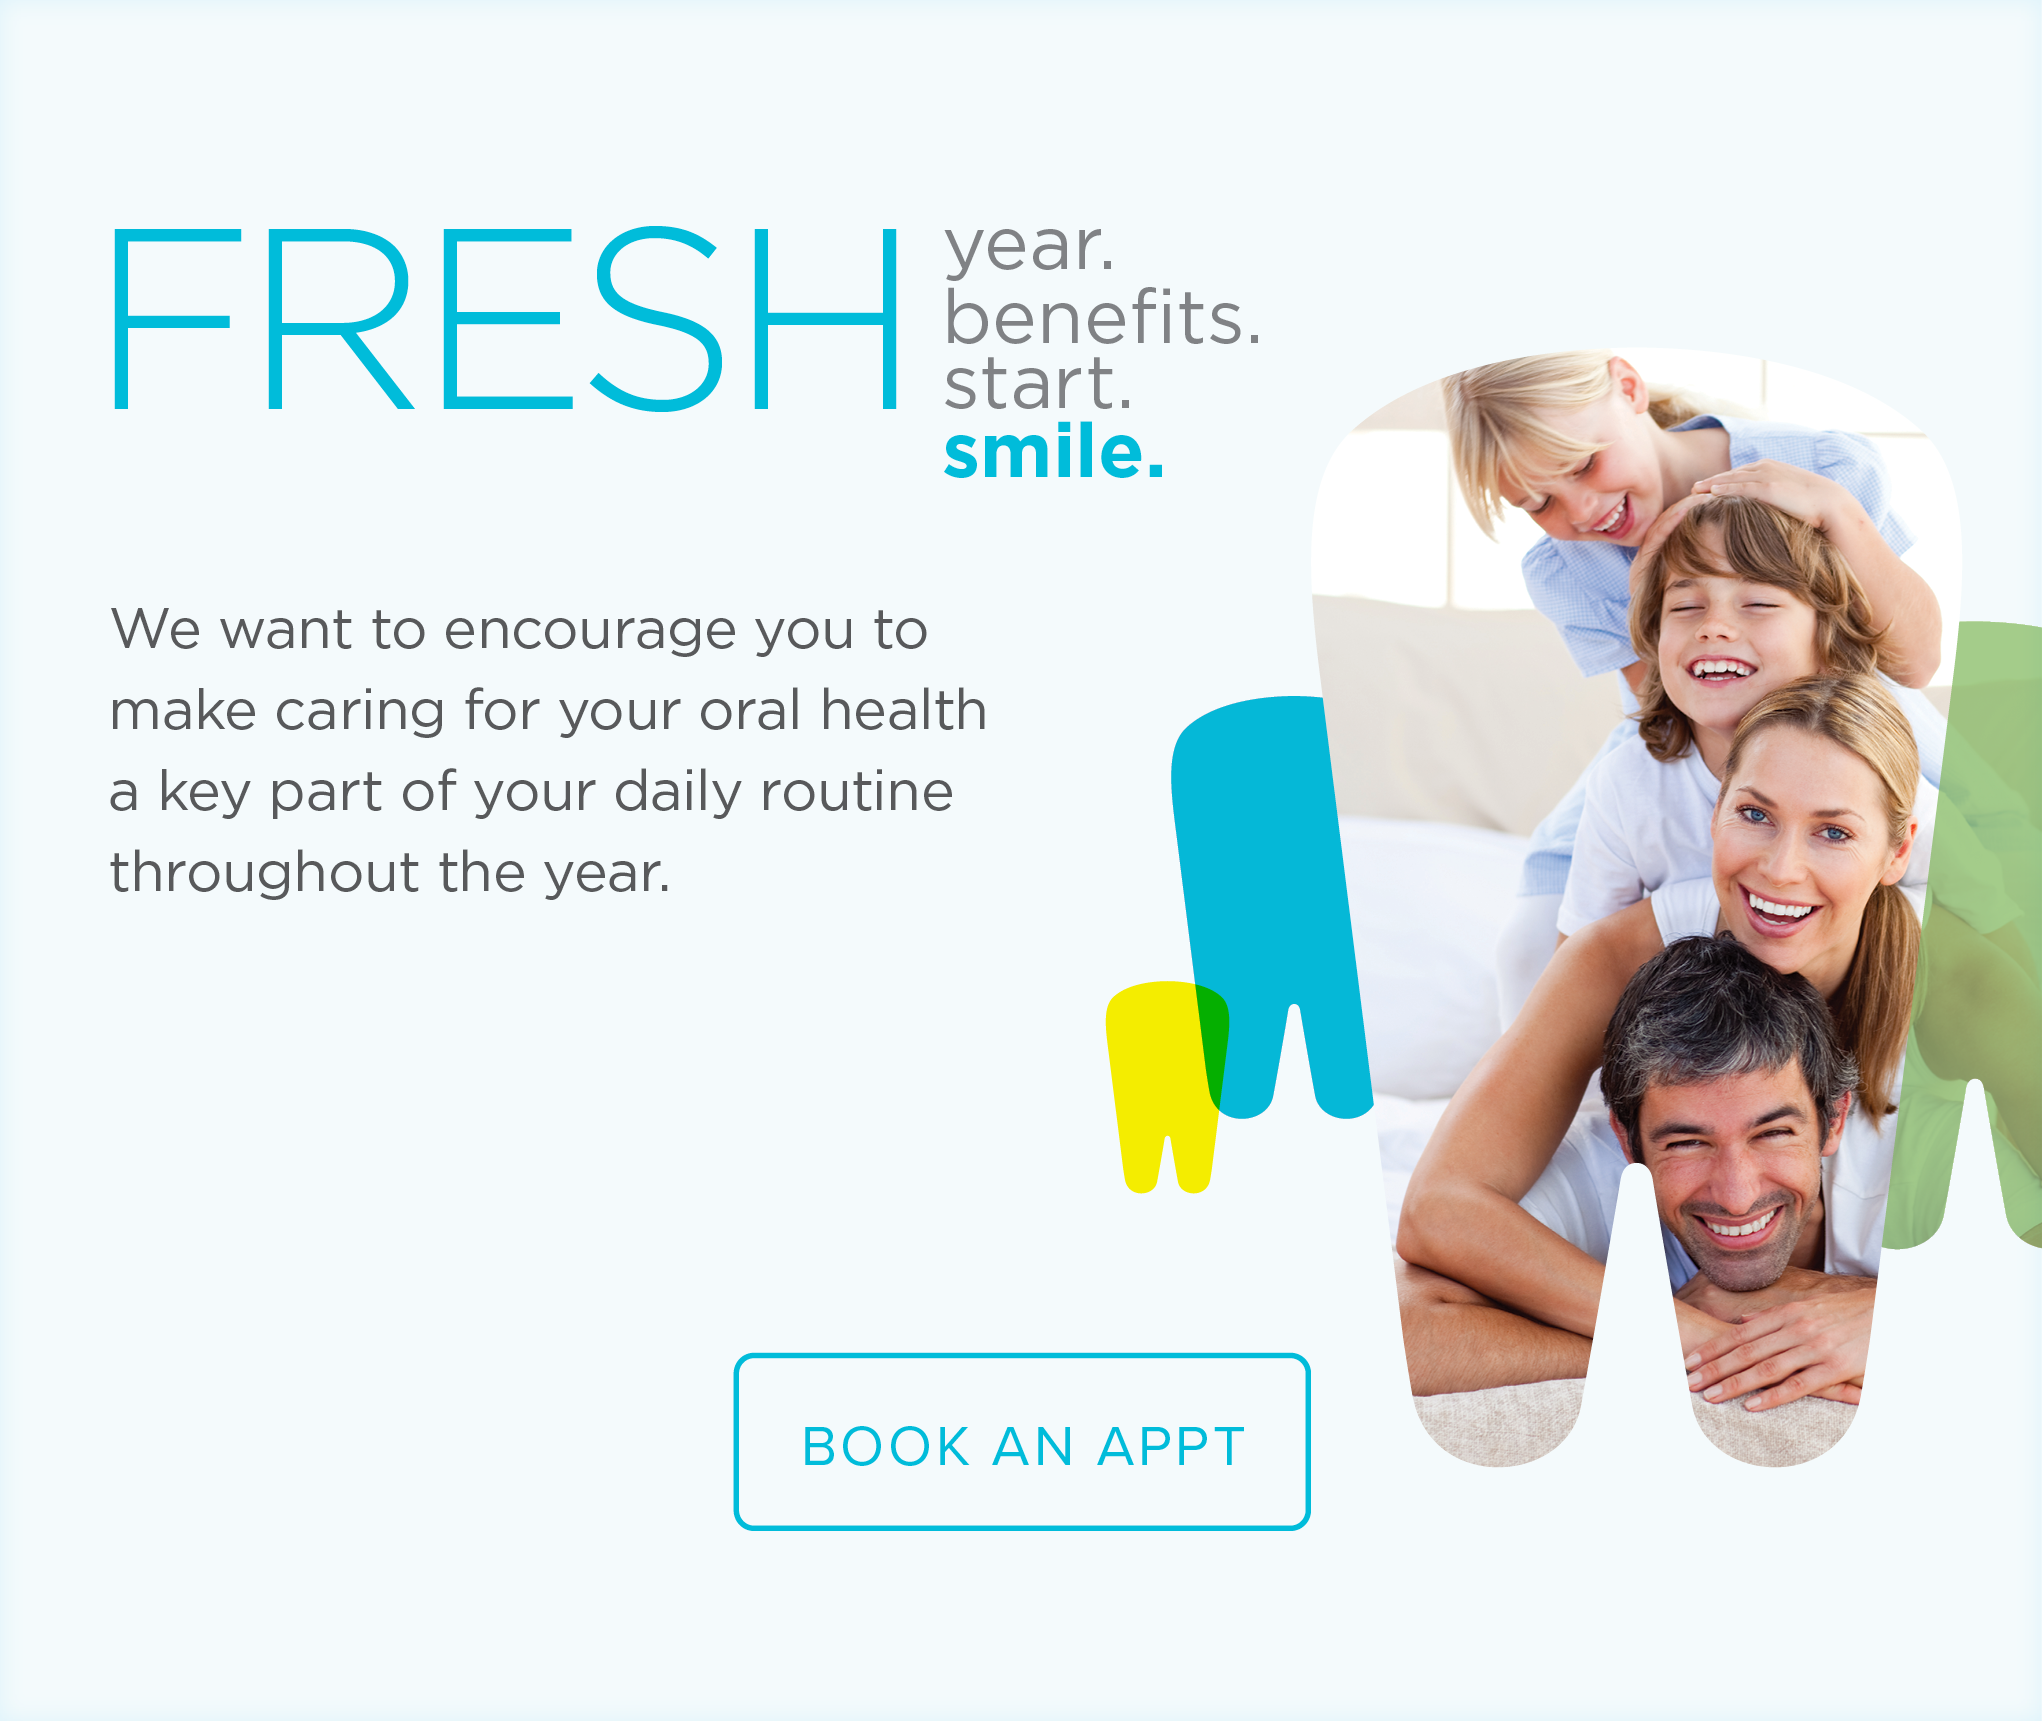 Tramonto Dental Group and Orthodontics - Make the Most of Your Benefits